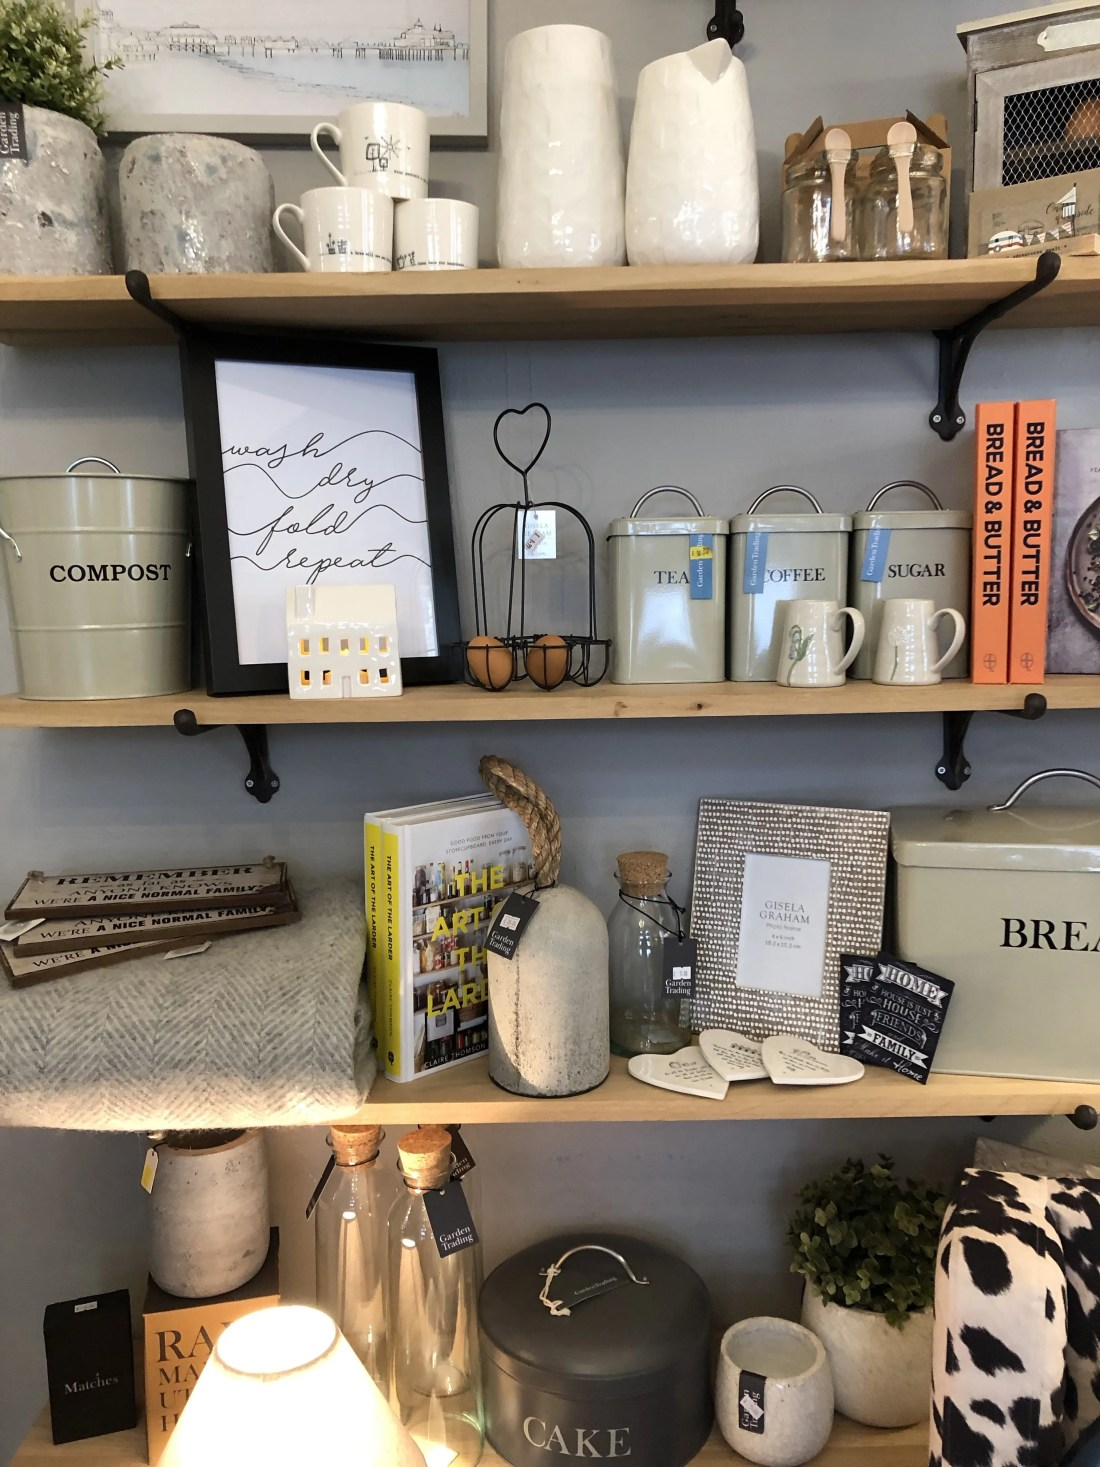 Shelves with books, cups and storage items